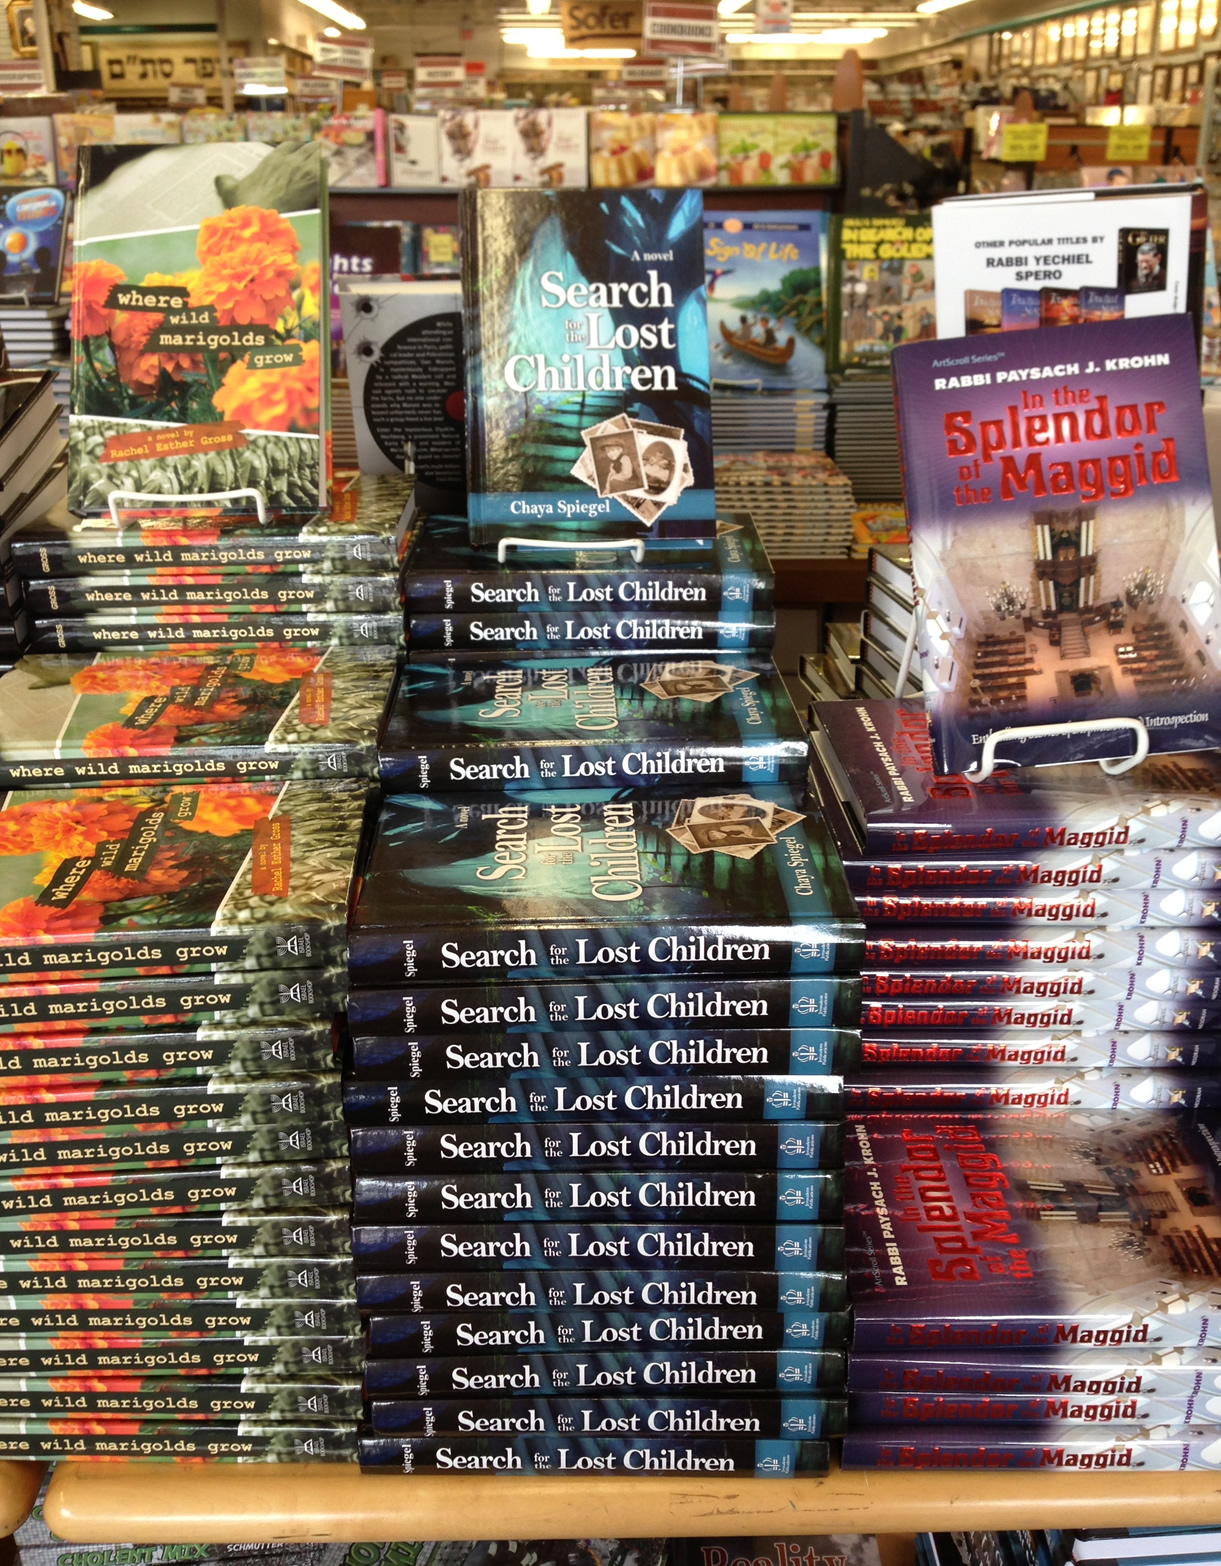 A stack of Chaya Spiegel\'s historical fiction novel, Search for the Lost Children (Jerusalem Publications, 2013), displayed at Eichler\'s.